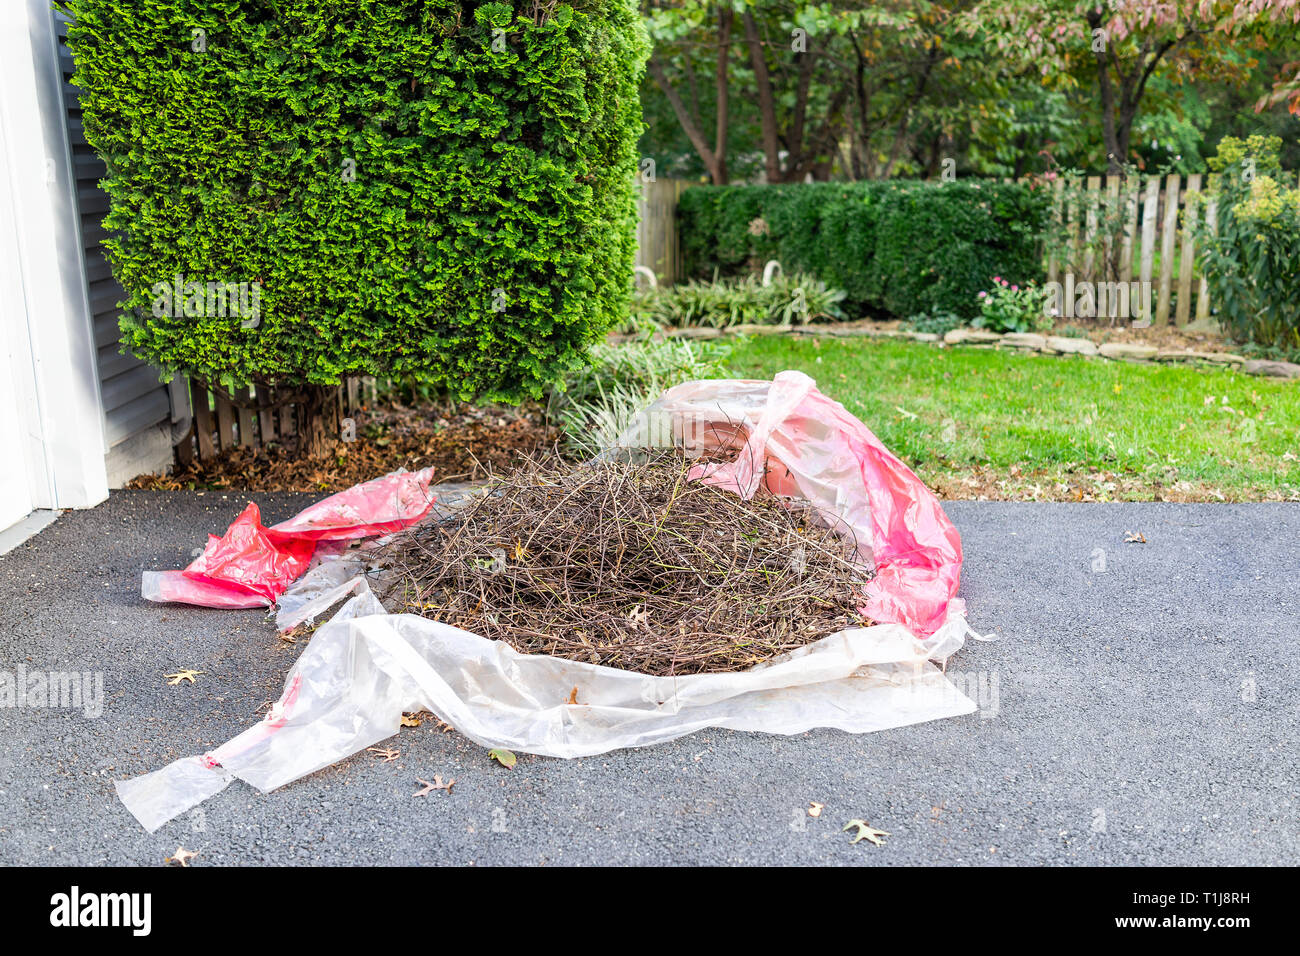 Tarp Tree Photos & Tarp Tree Images - Alamy